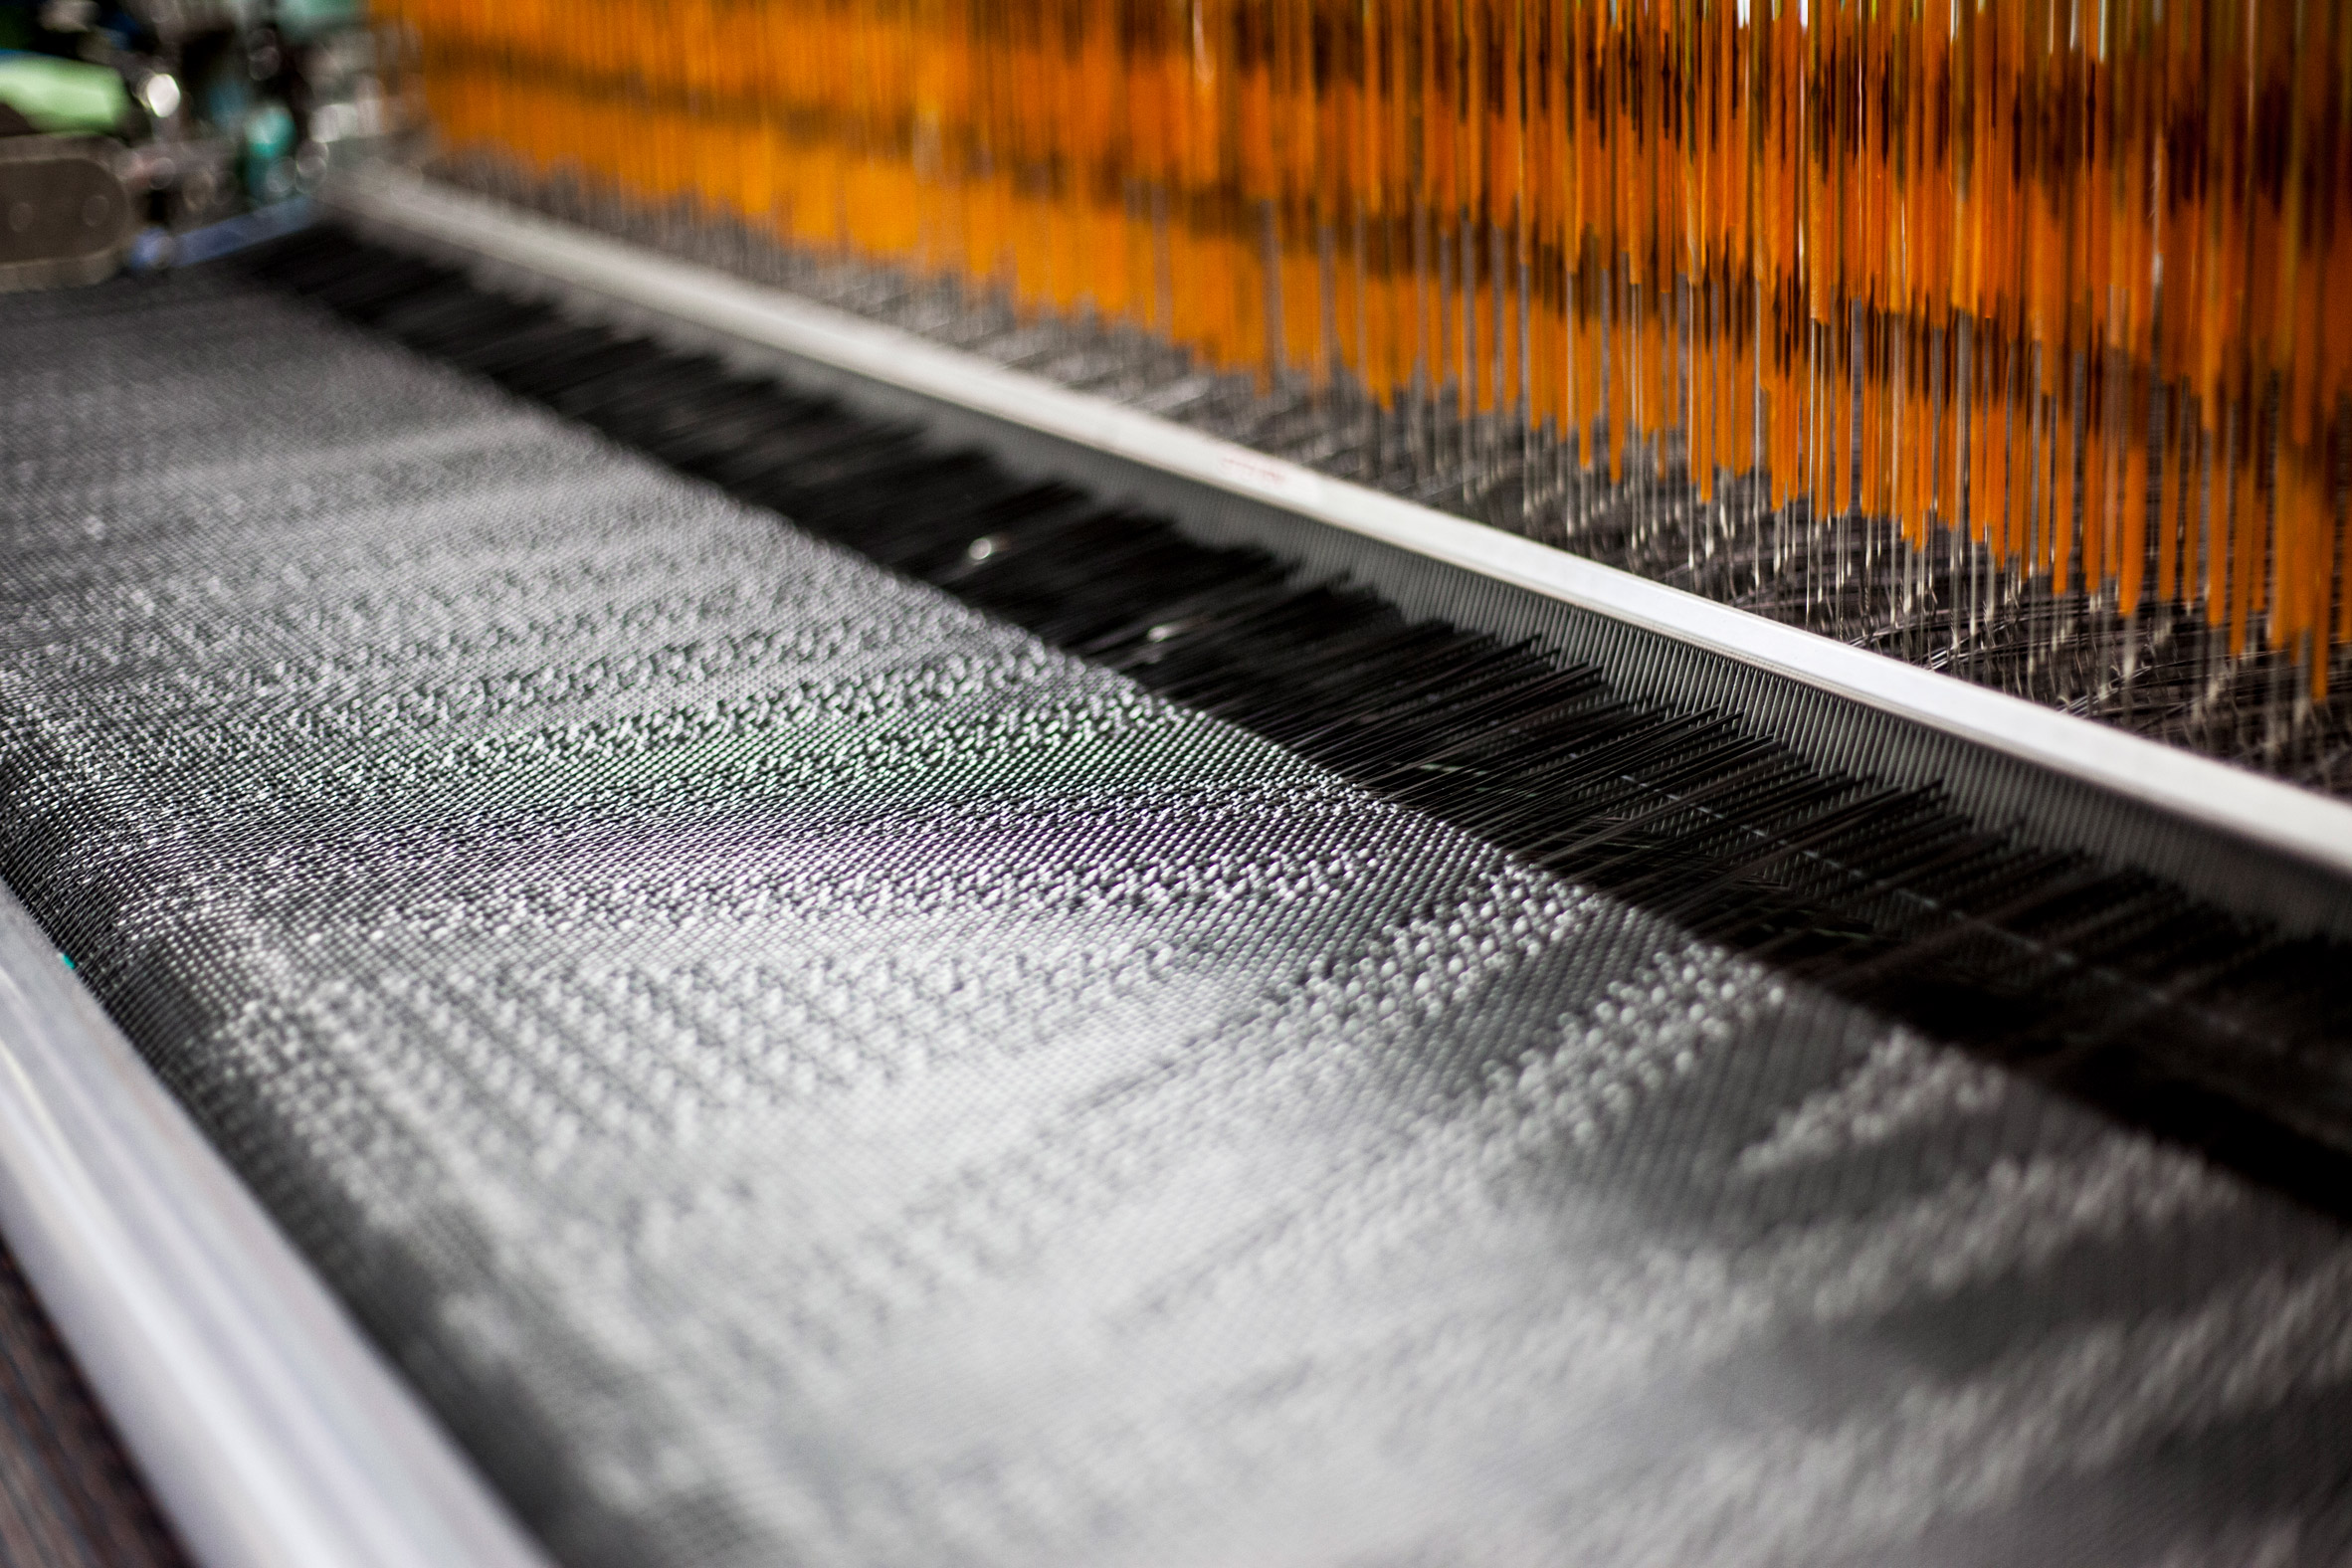 Technology means there's no limit to designs Bolon's factory can produce, says creative director Marie Eklund